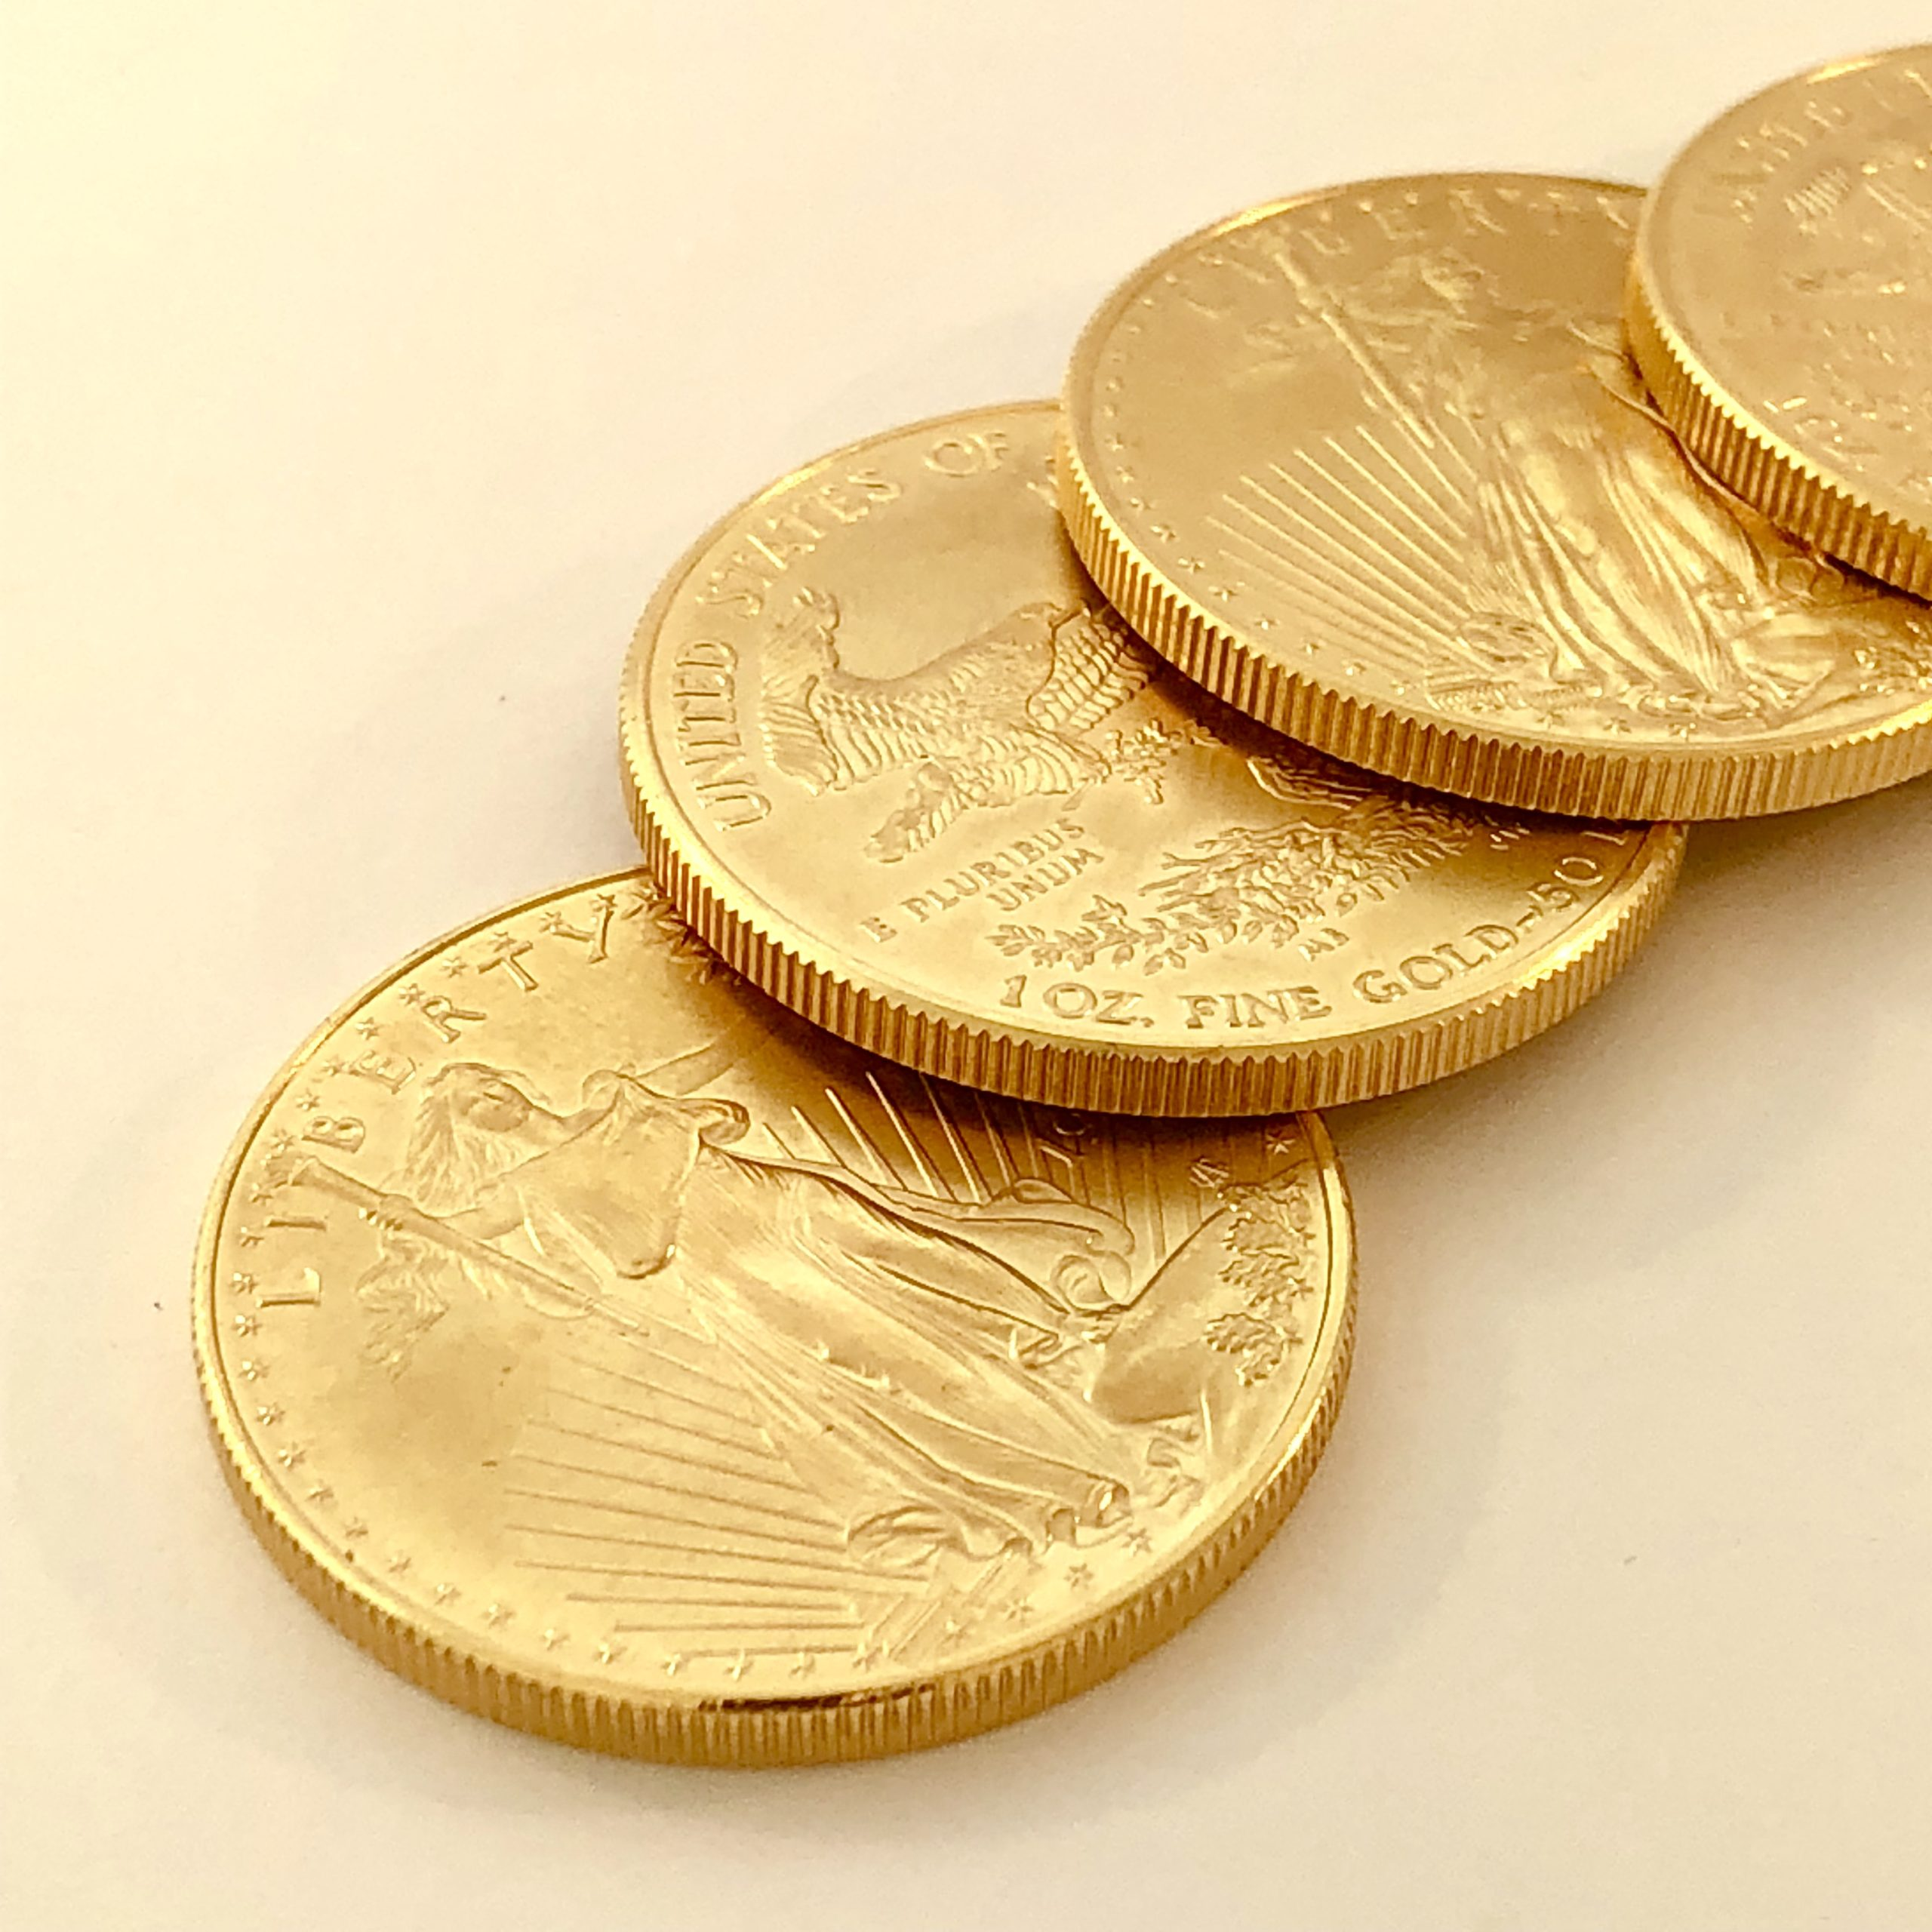 Buy or sell gold coins in Baton Rouge